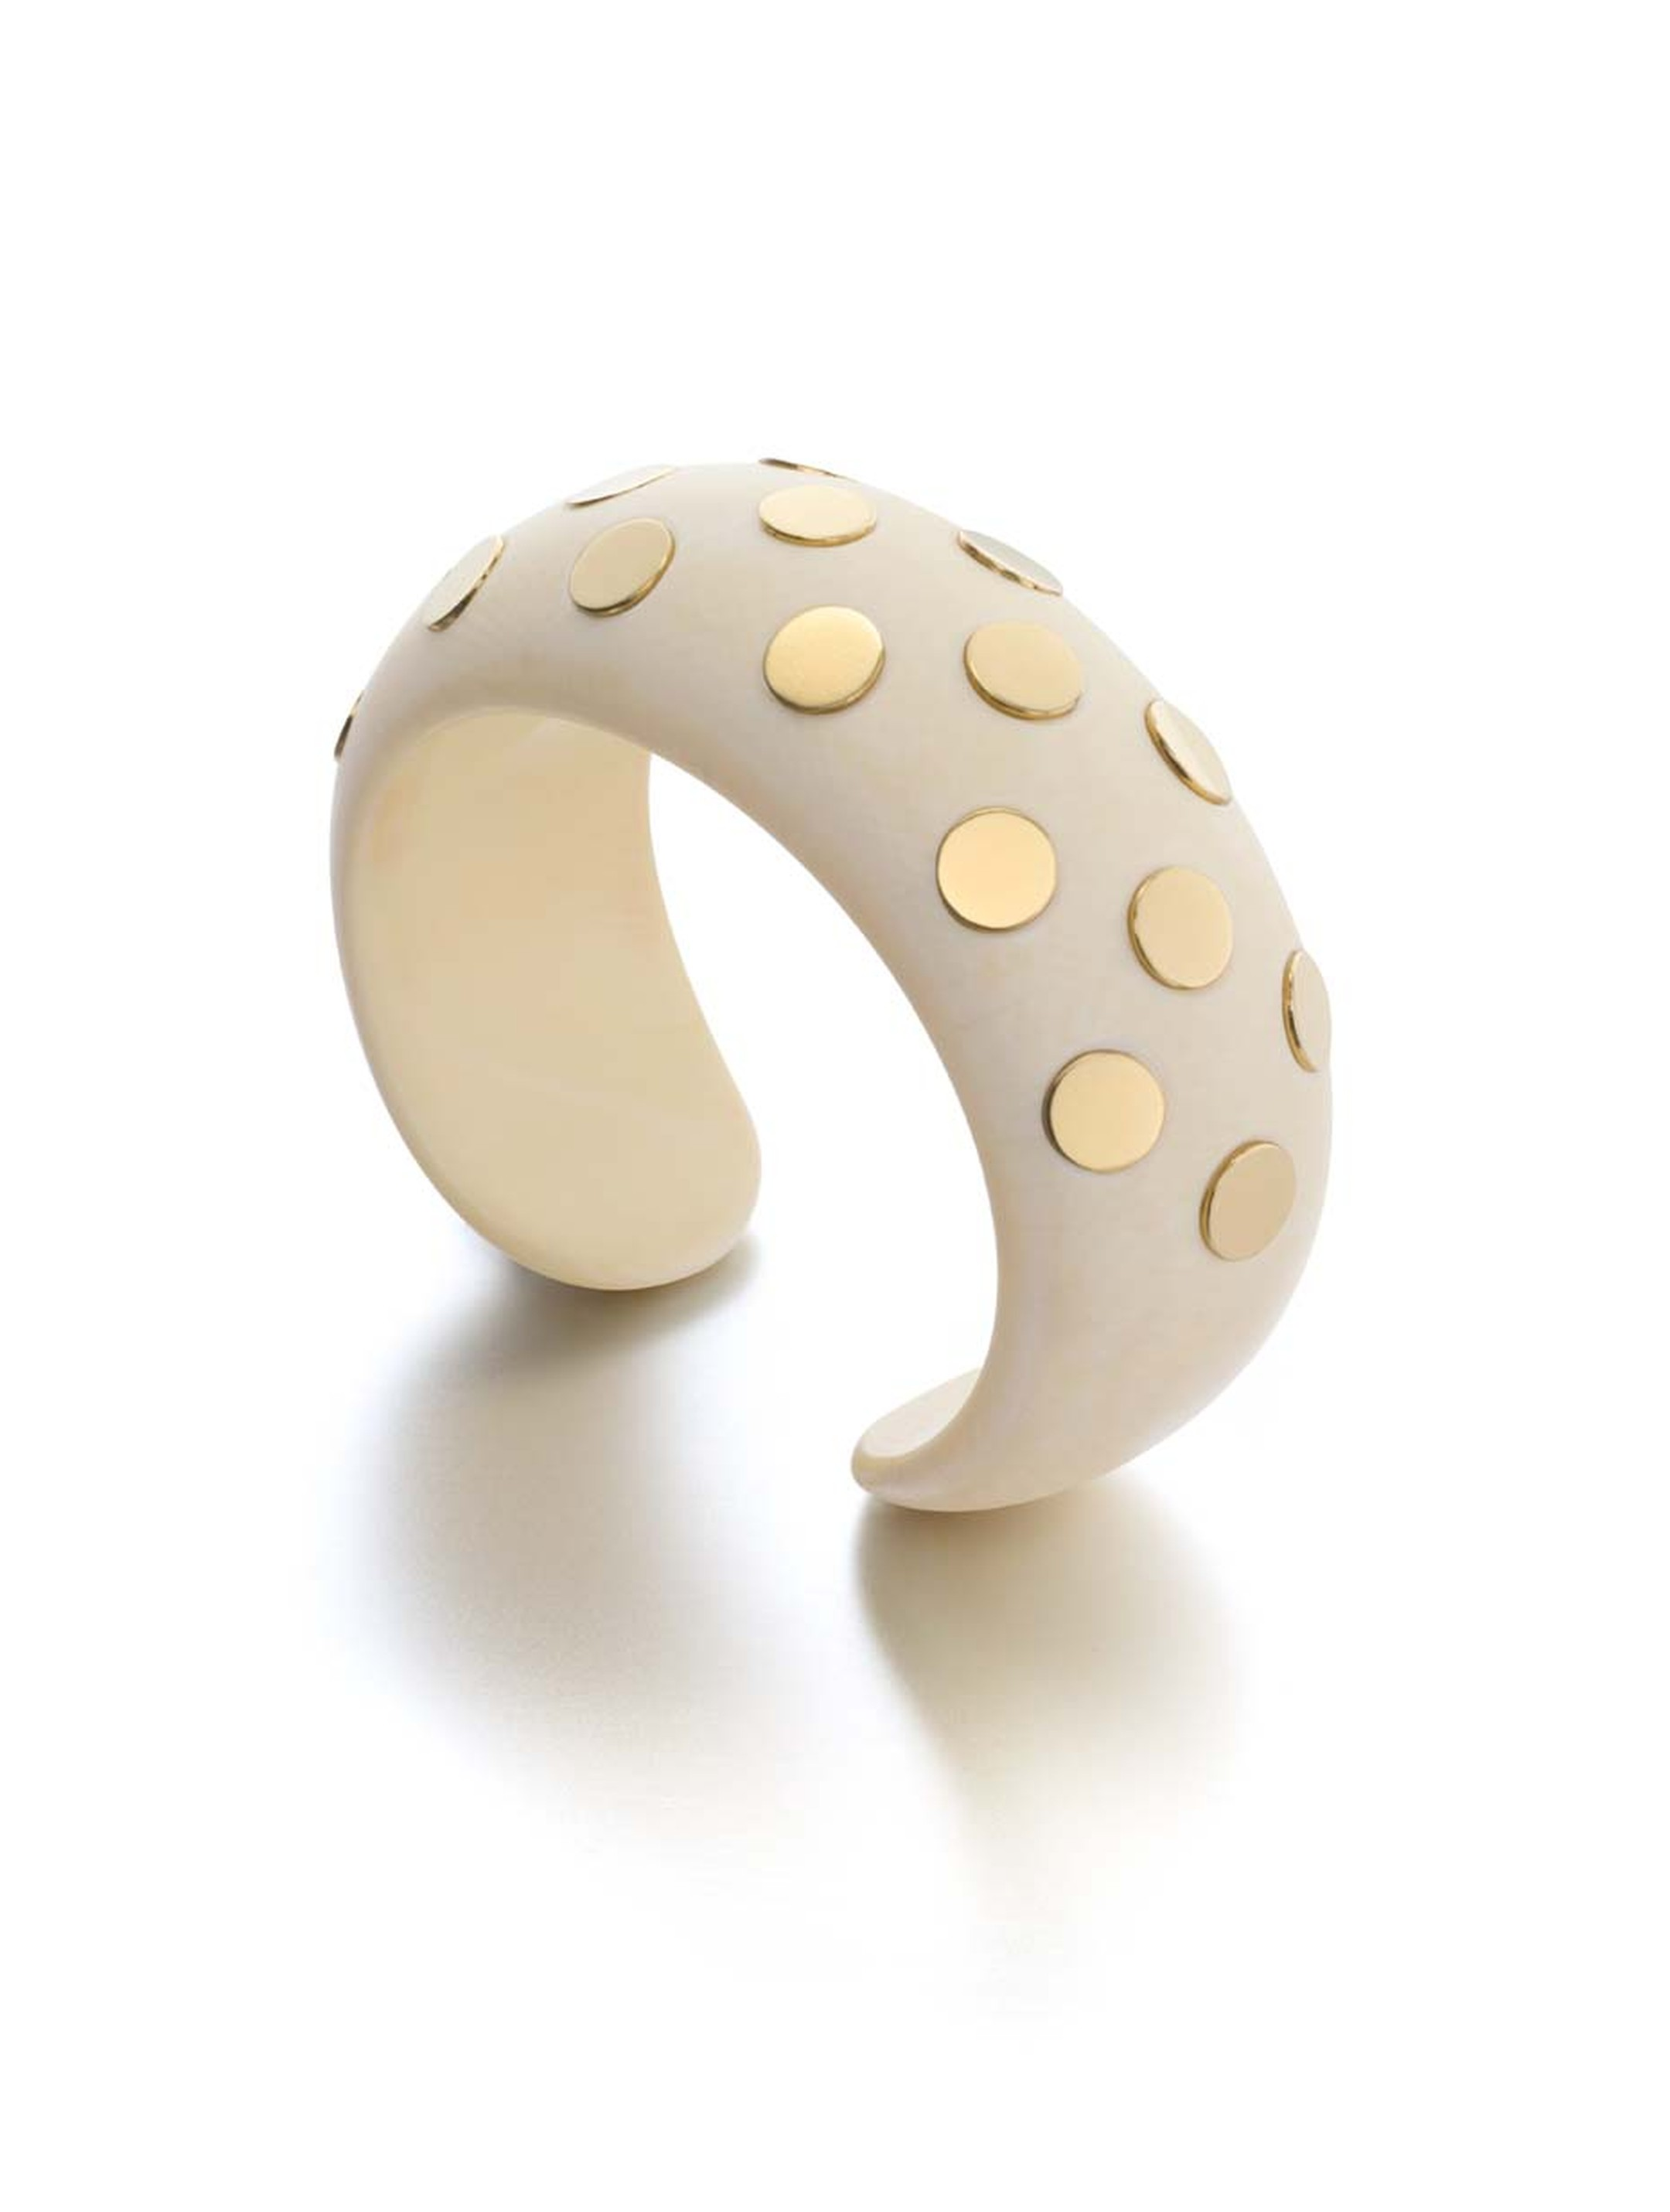 Suzanne Belperron and Jeanne Boivin Art Modern gold and ivory Tranche cuff, created for the house of René Boivin in 1931, to be exhibited by Siegelson at Masterpiece London.